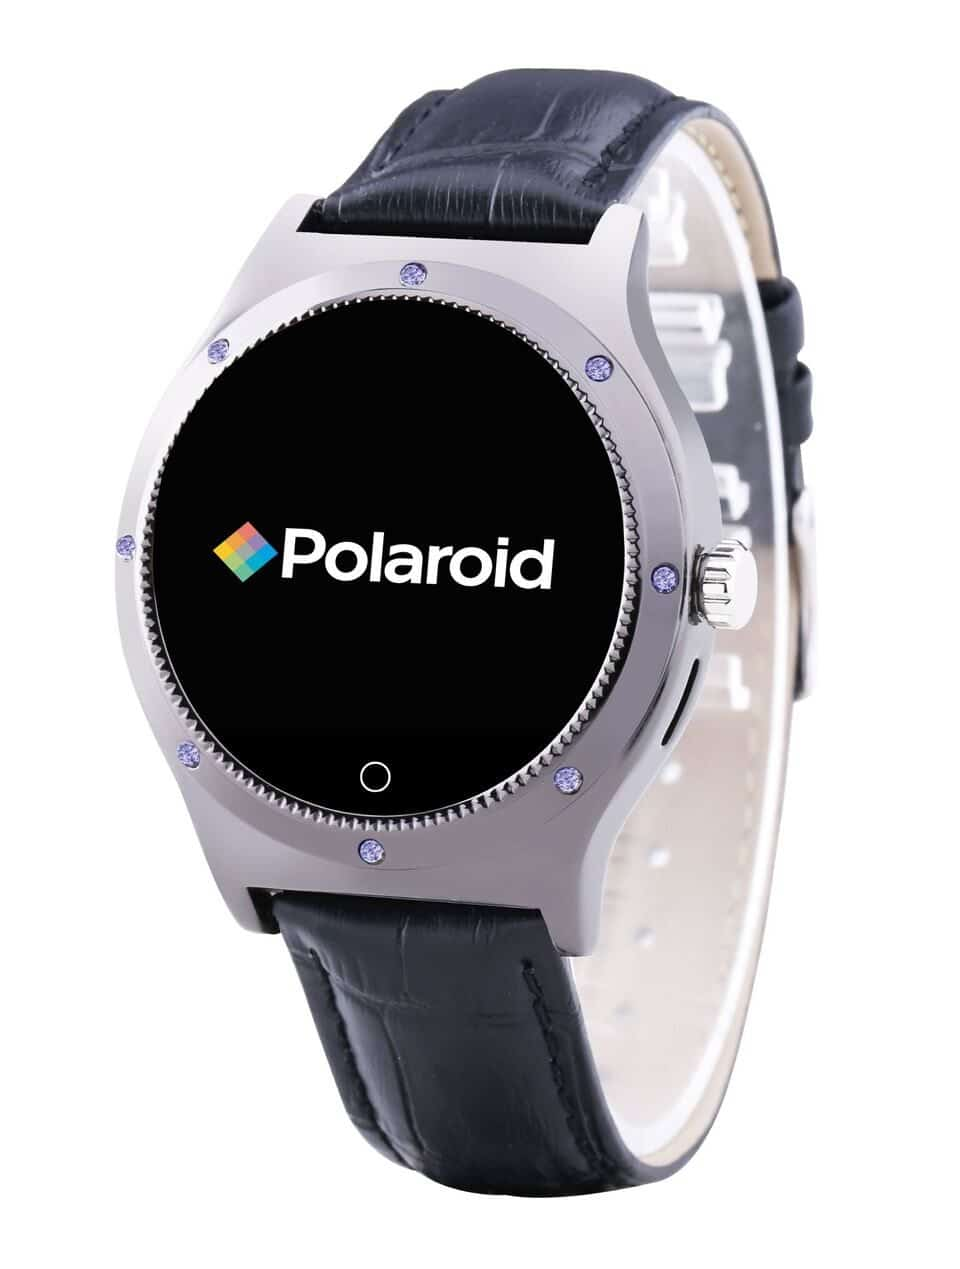 polaroid prepares to launch its own line of wearables 4 - Polaroid prepares to launch its own line of wearables